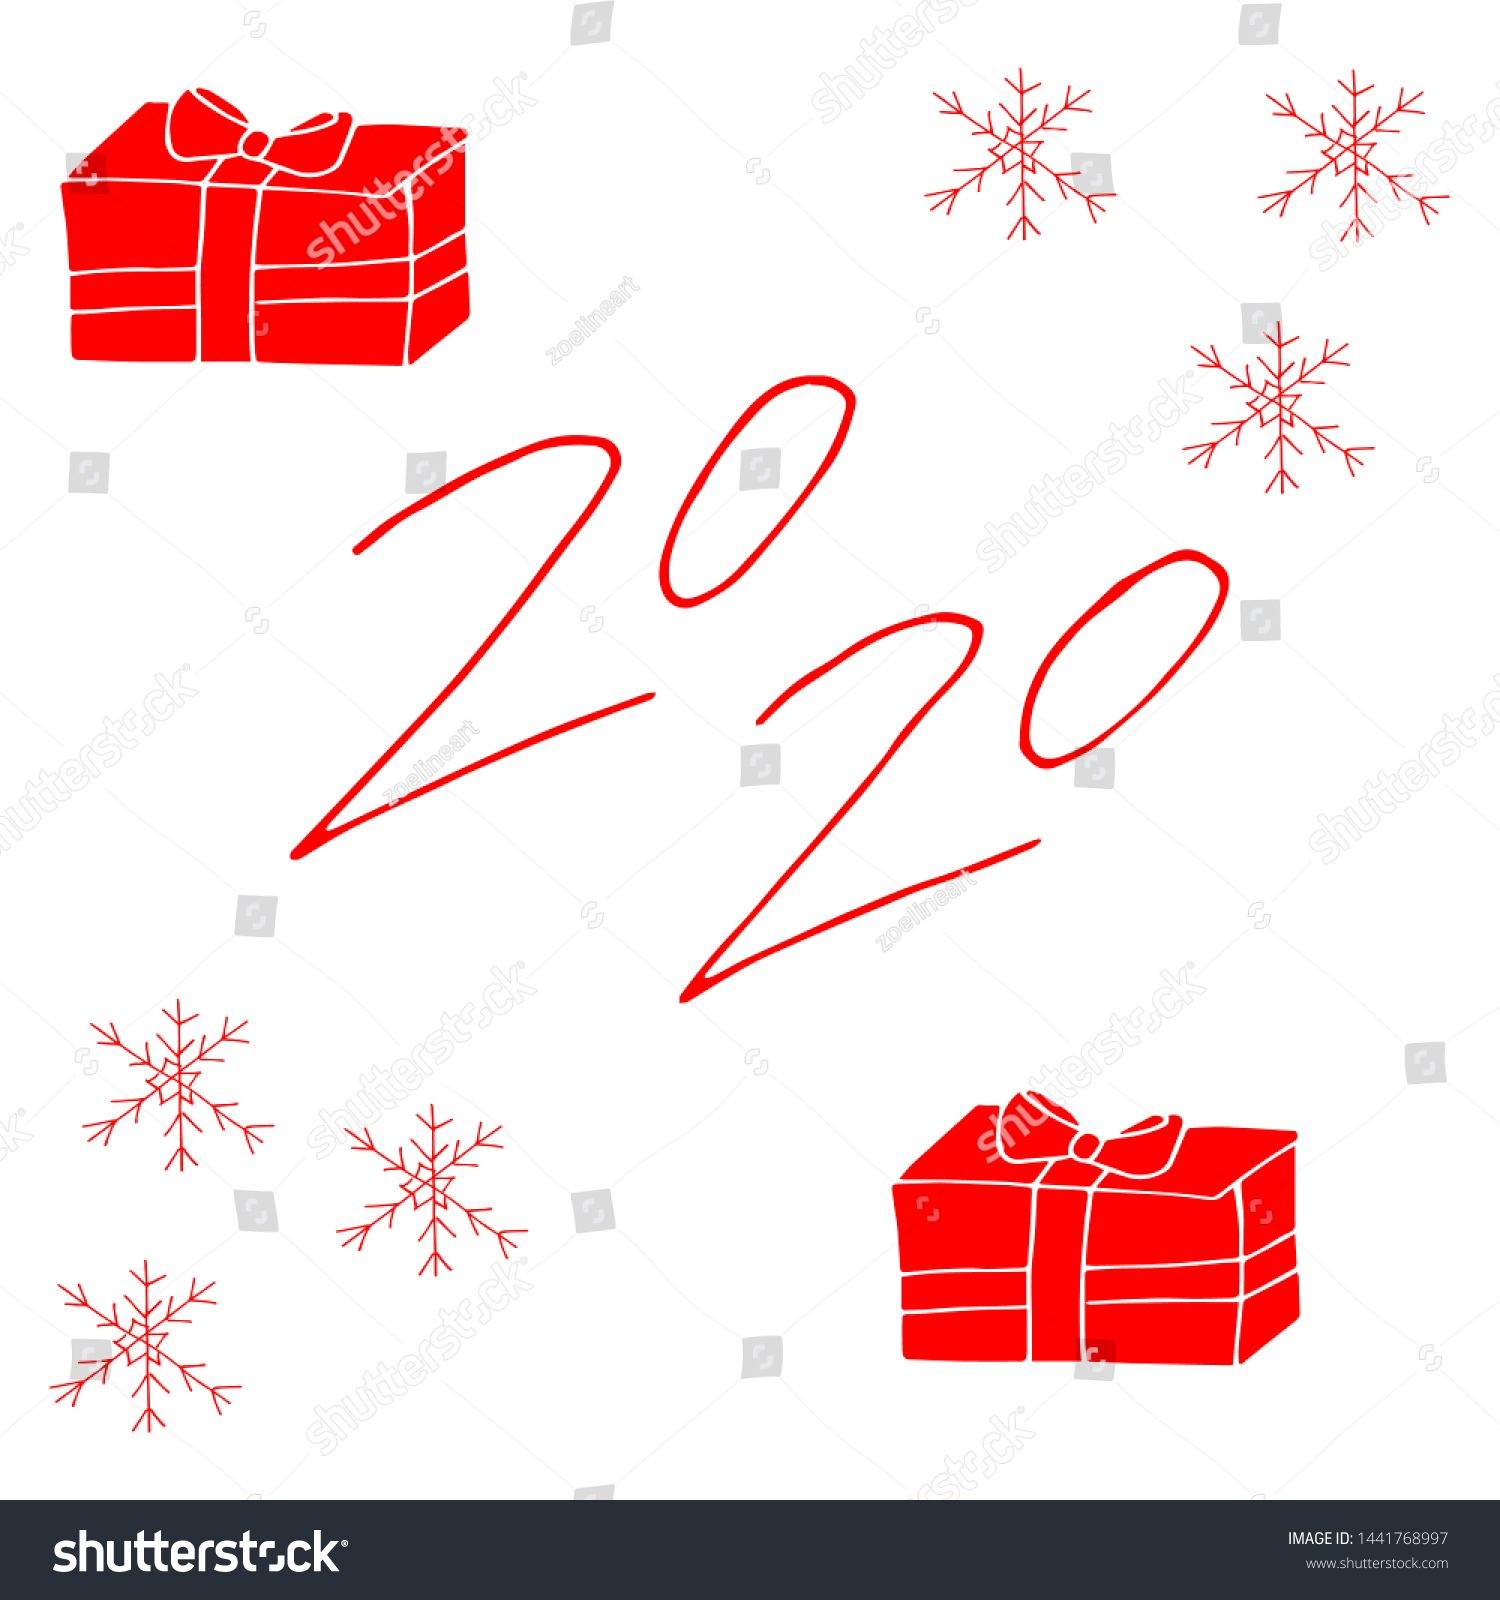 2020 Text Design Red Color Collection Of Happy New Year And Happy Holidays Lettering Design Element Handwritte Text Design Lettering Design Color Collection